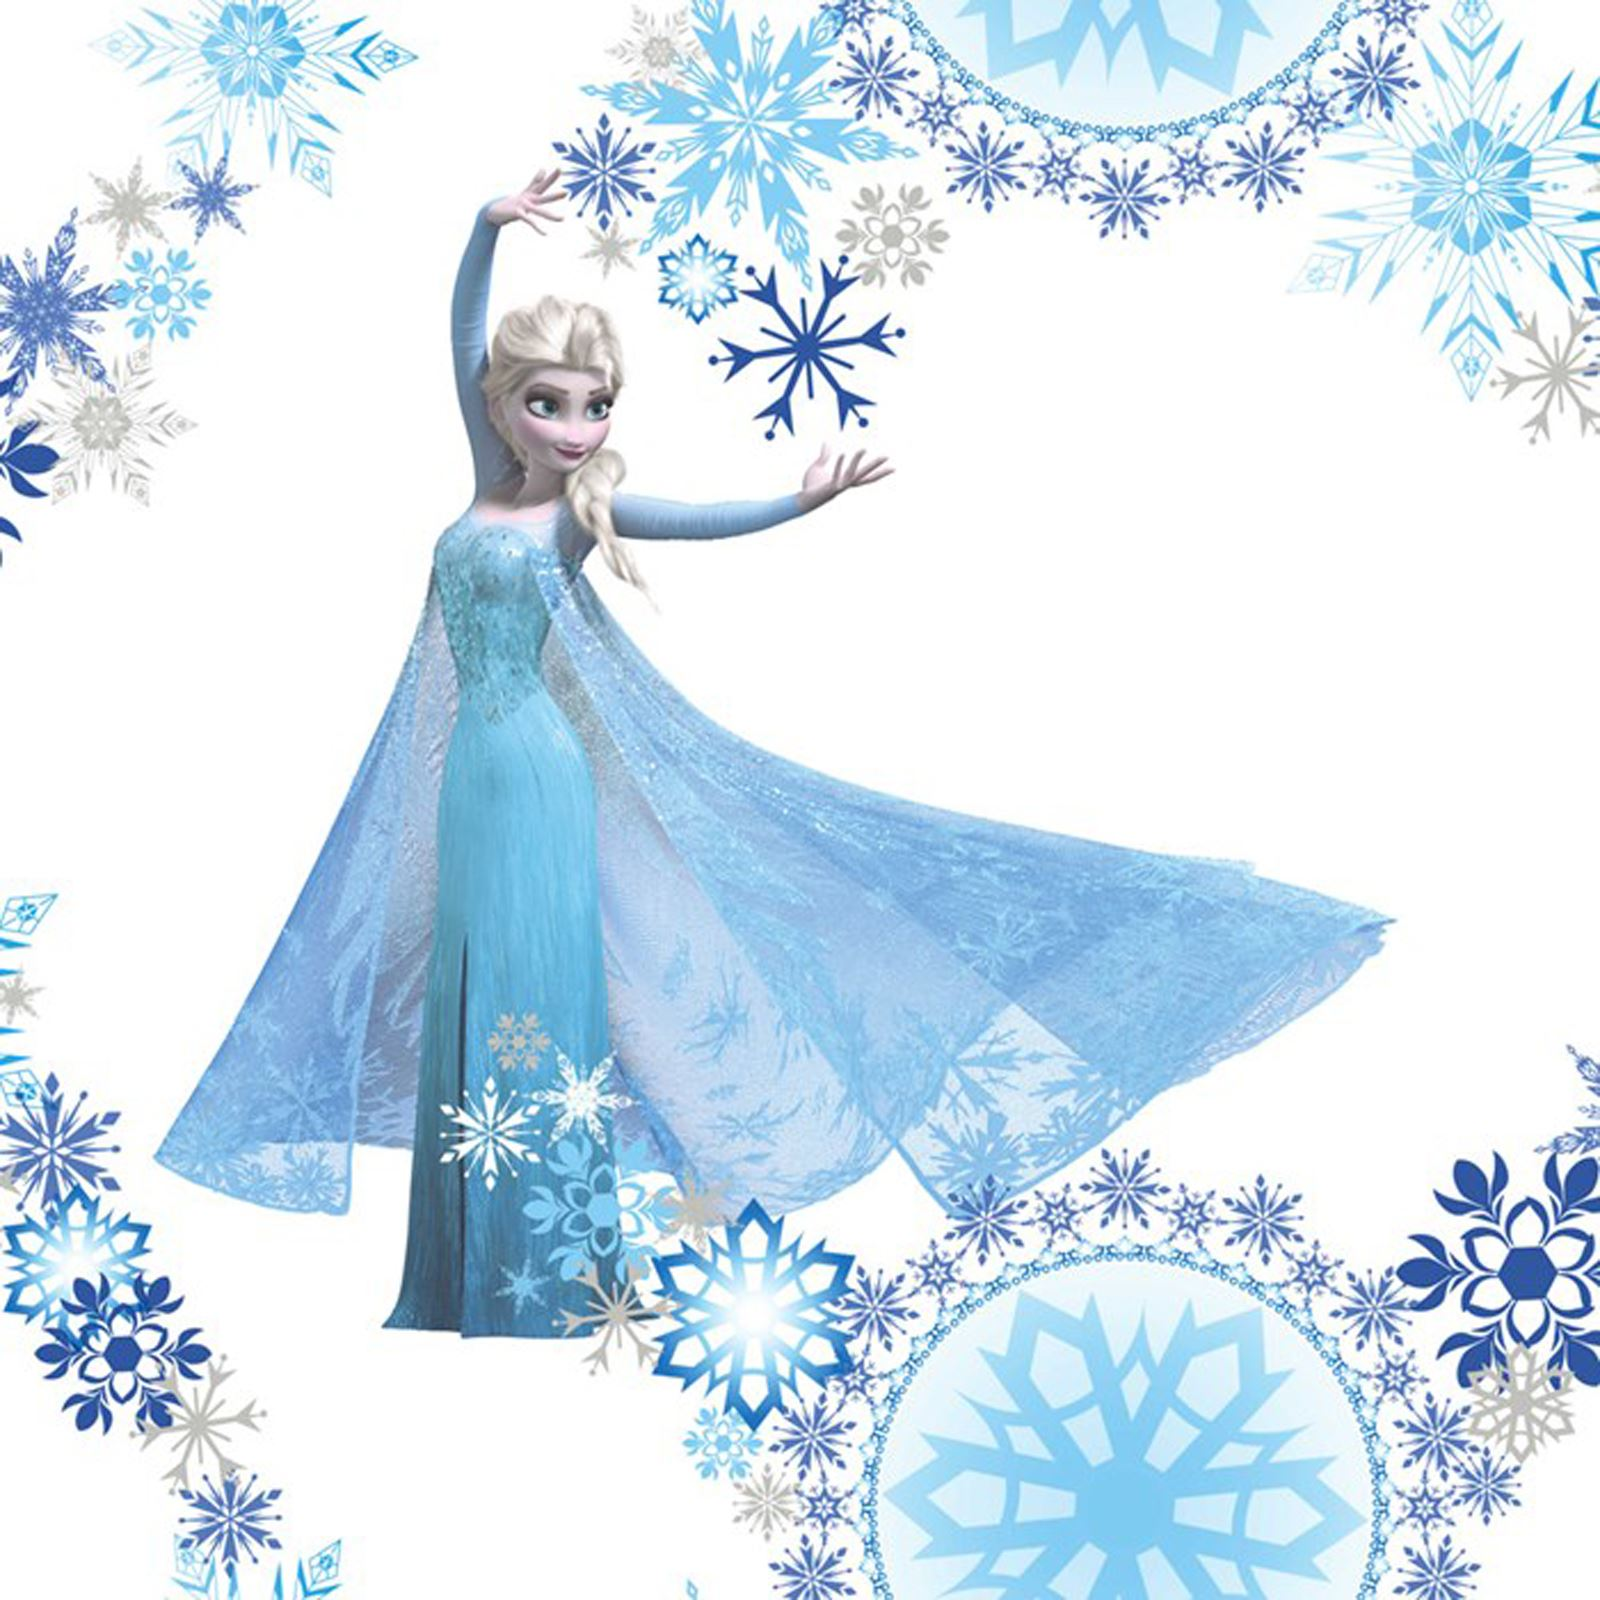 Disney frozen wallpaper borders and wall stickers wall dcor ebay disney frozen wallpaper borders and wall stickers wall amipublicfo Gallery